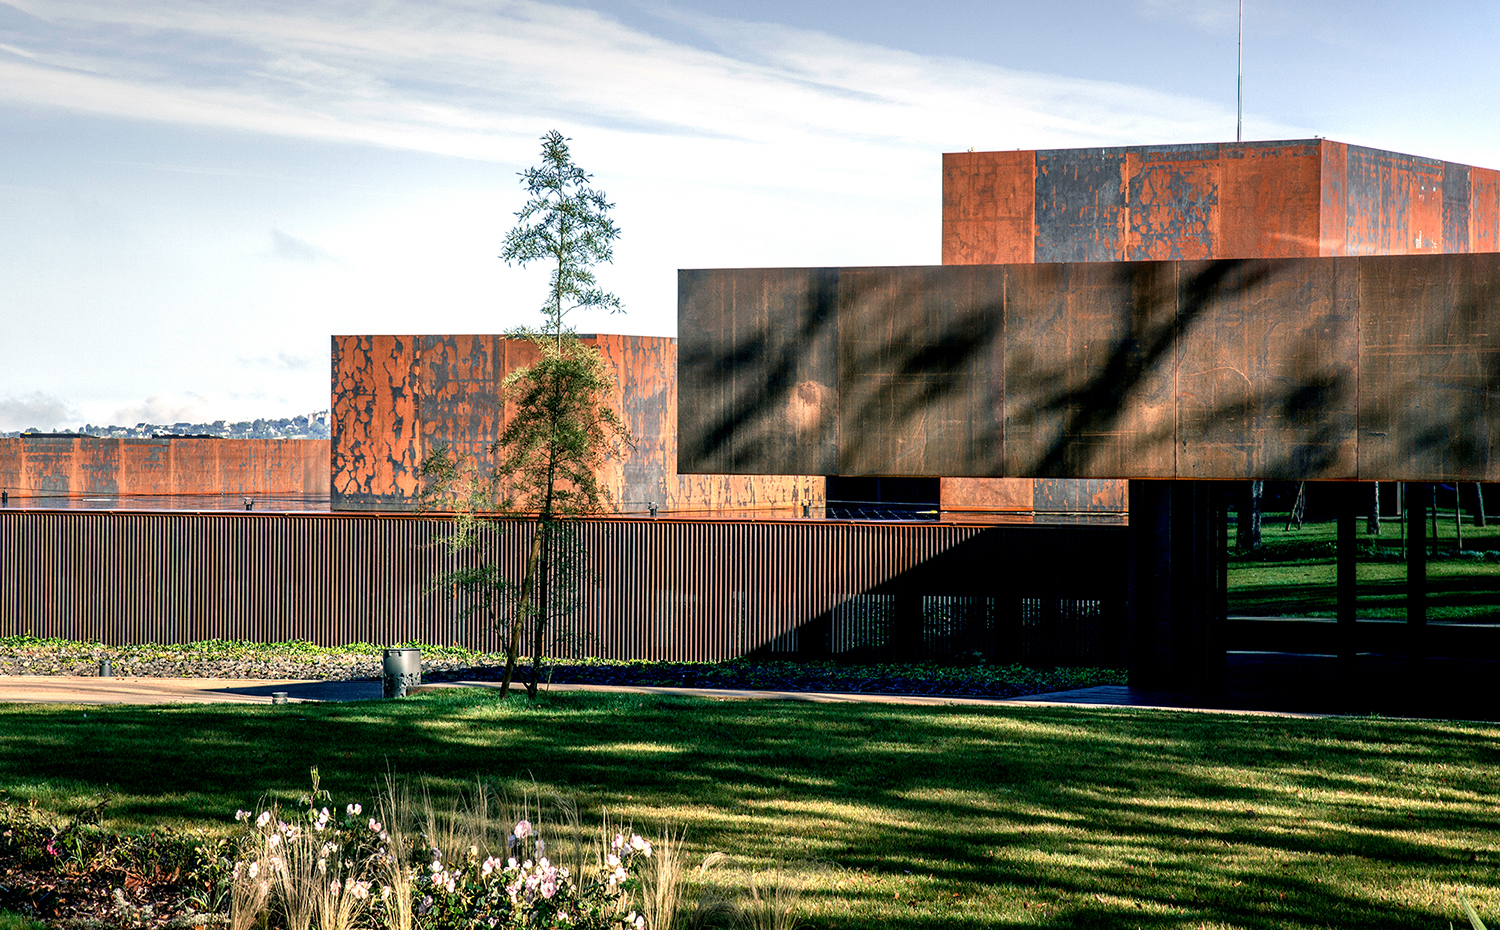 SoulagesMuseum 3. Museo Soulages, Rodez (Francia)